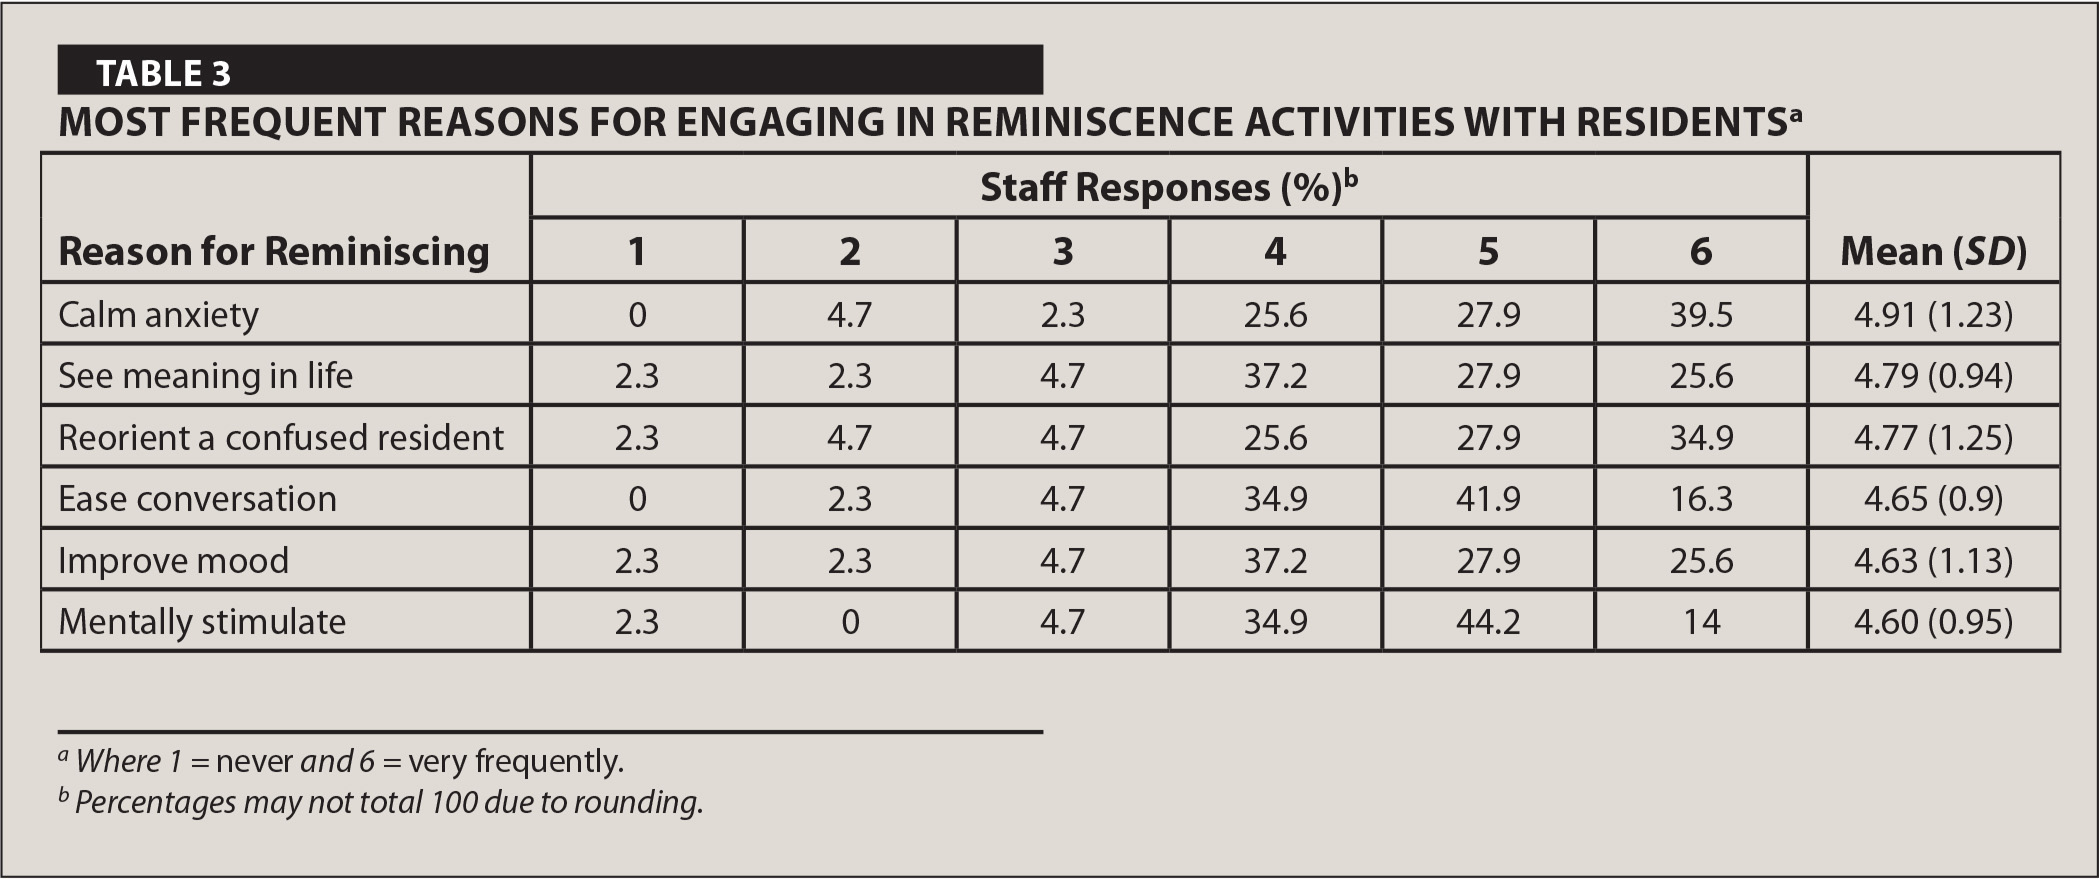 Most Frequent Reasons for Engaging in Reminiscence Activities with Residentsa